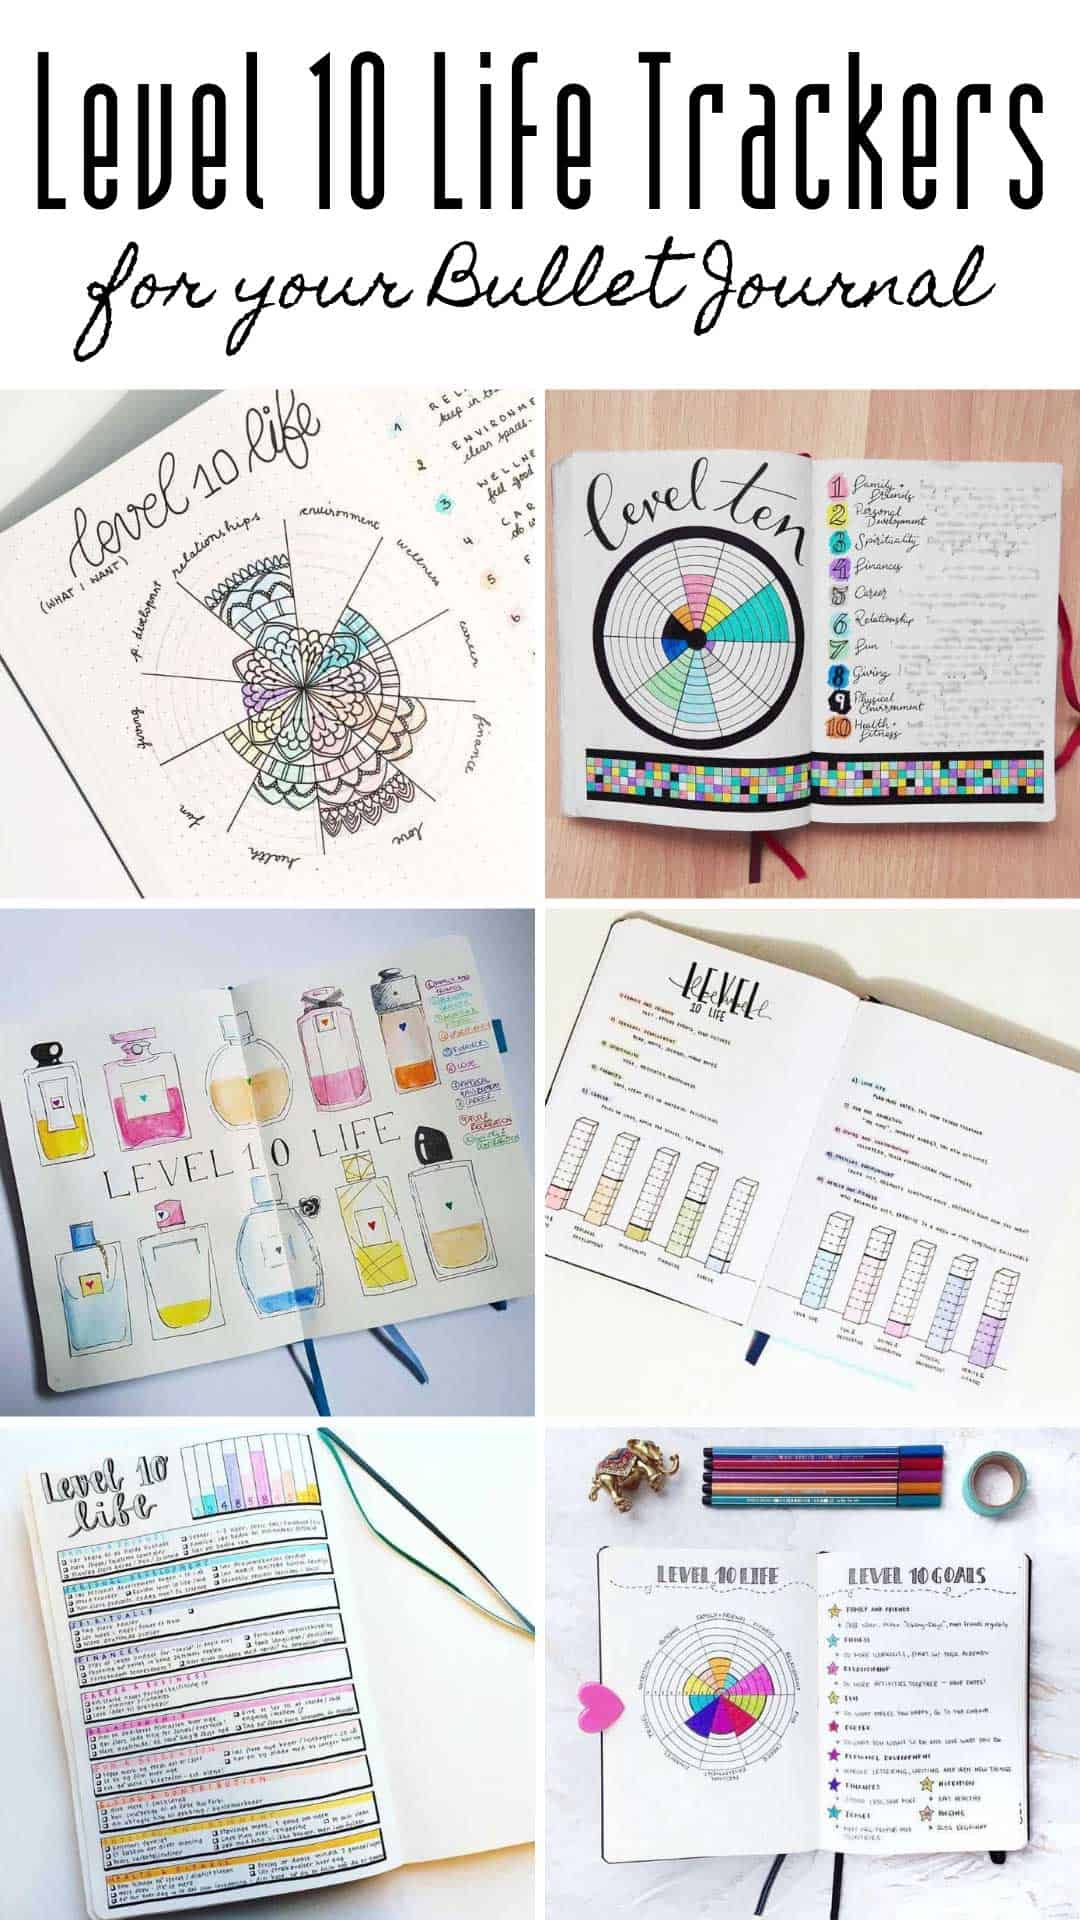 Find out how to track your level 10 life in your bullet journal with these clever tracker spreads #bulletjournal